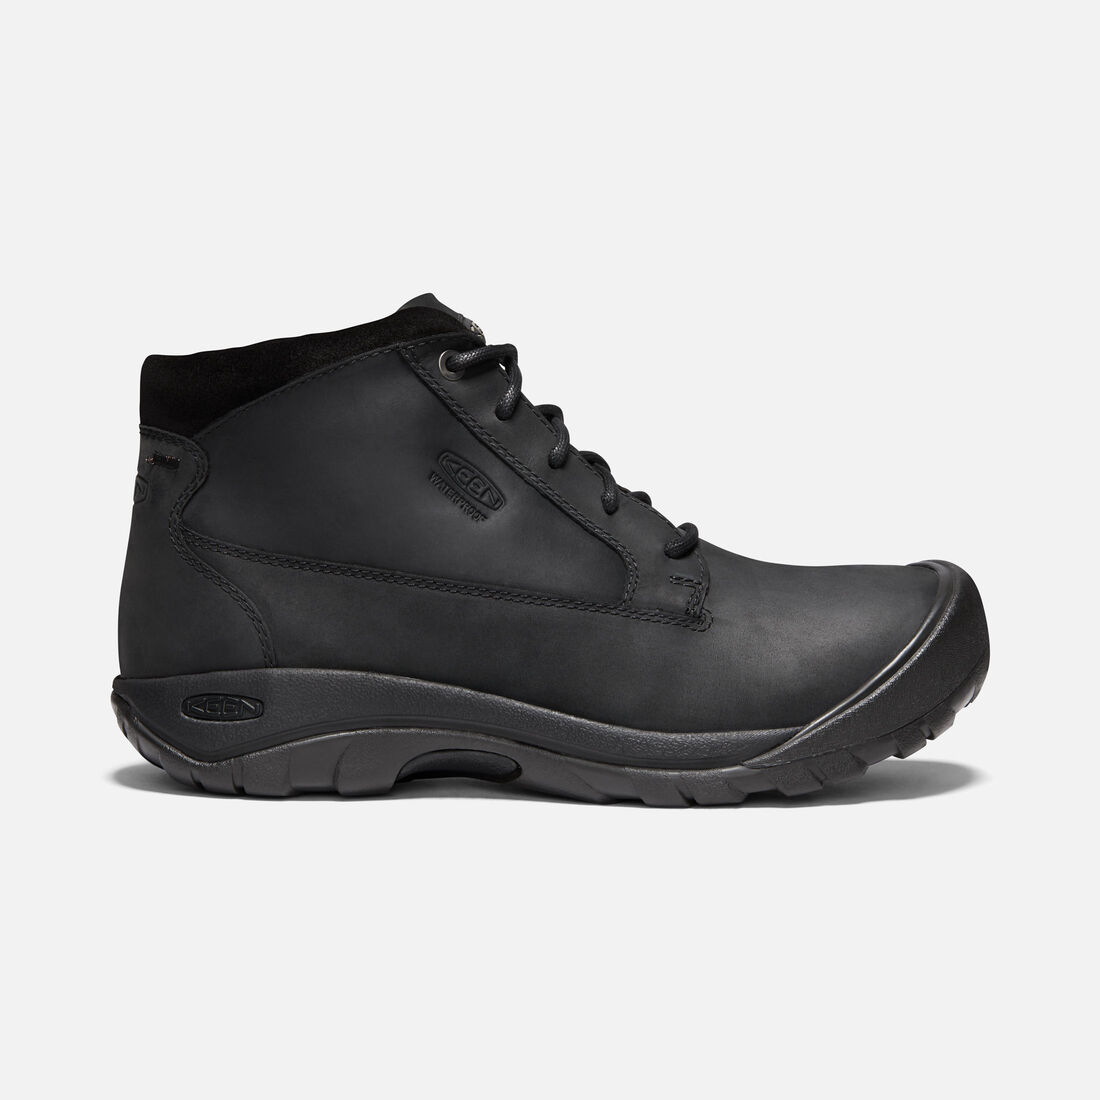 Men's Austin Casual Waterproof Boot in BLACK/RAVEN - large view.